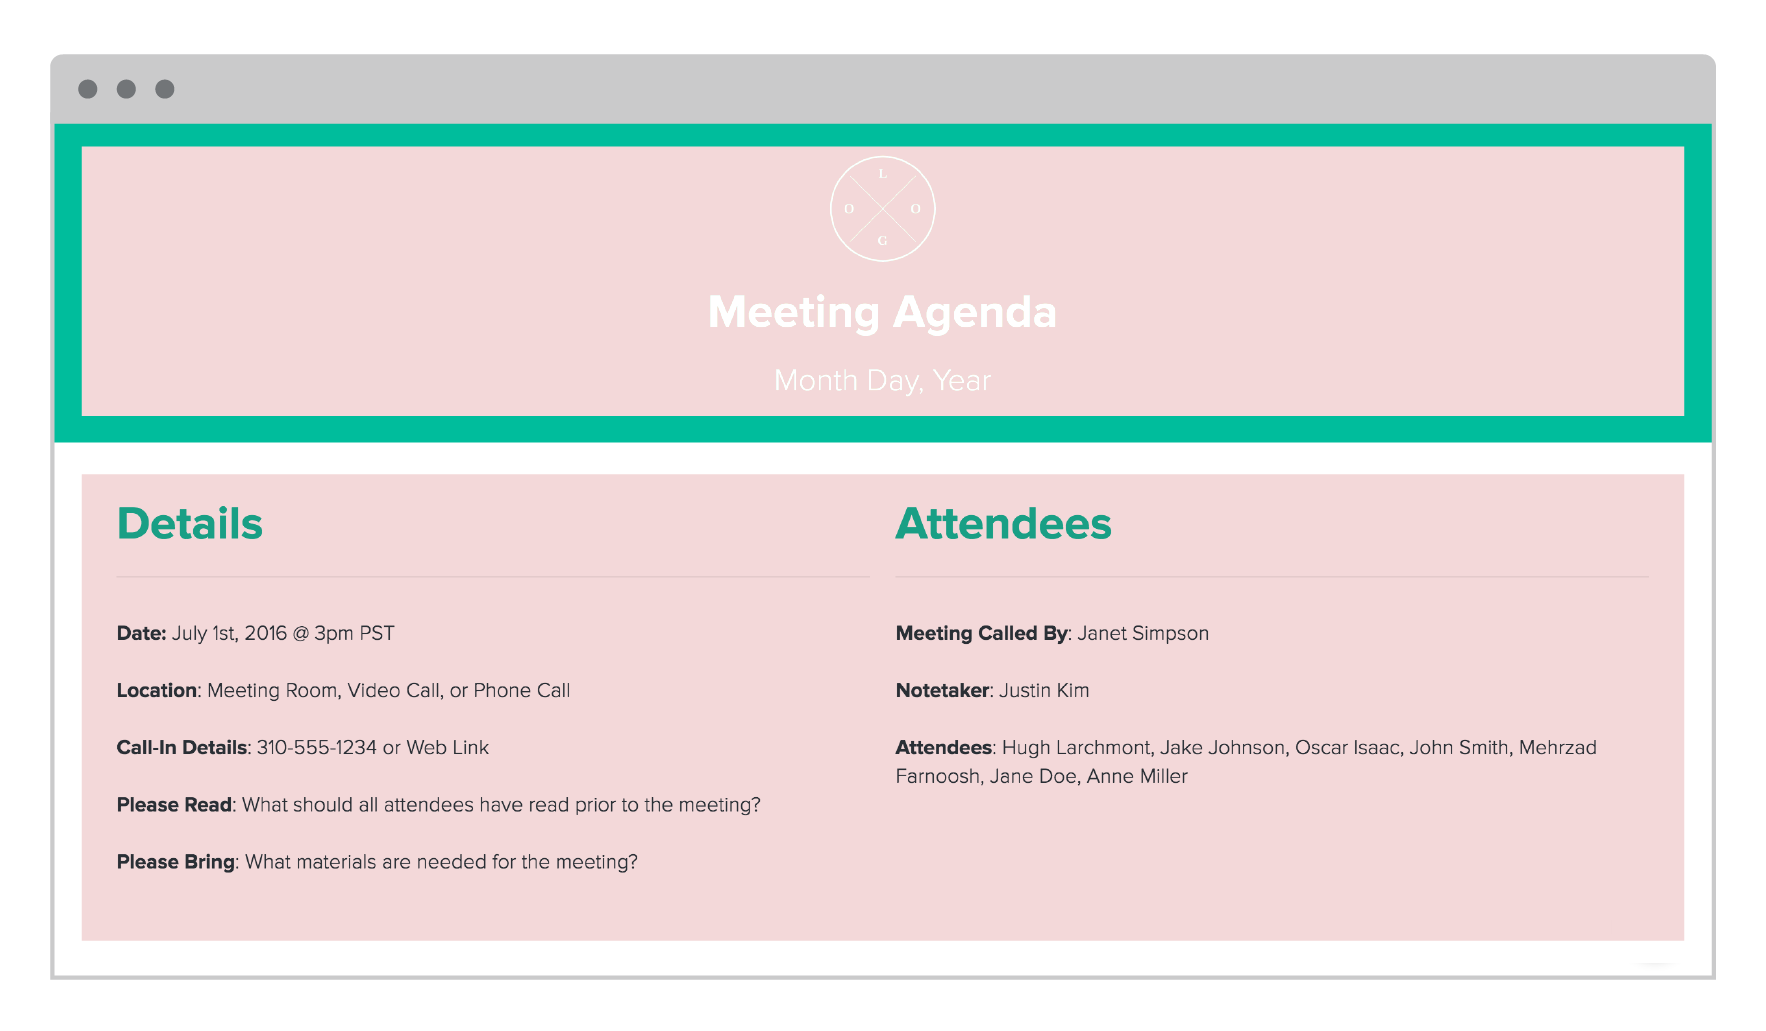 Meeting Agenda by Xtensio